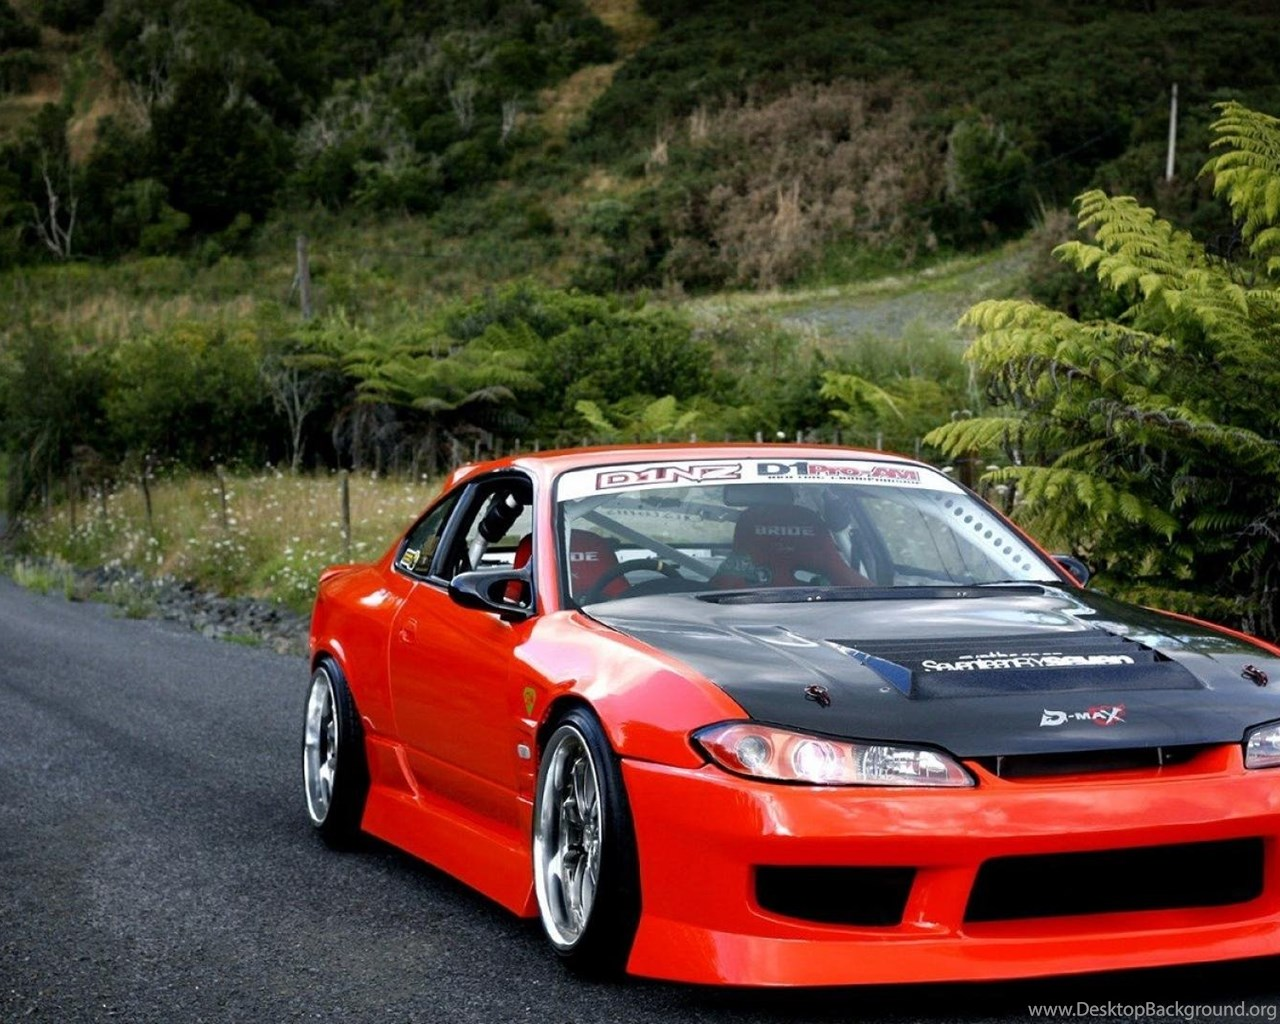 Cars Nissan Silvia Jdm Wallpapers Desktop Background